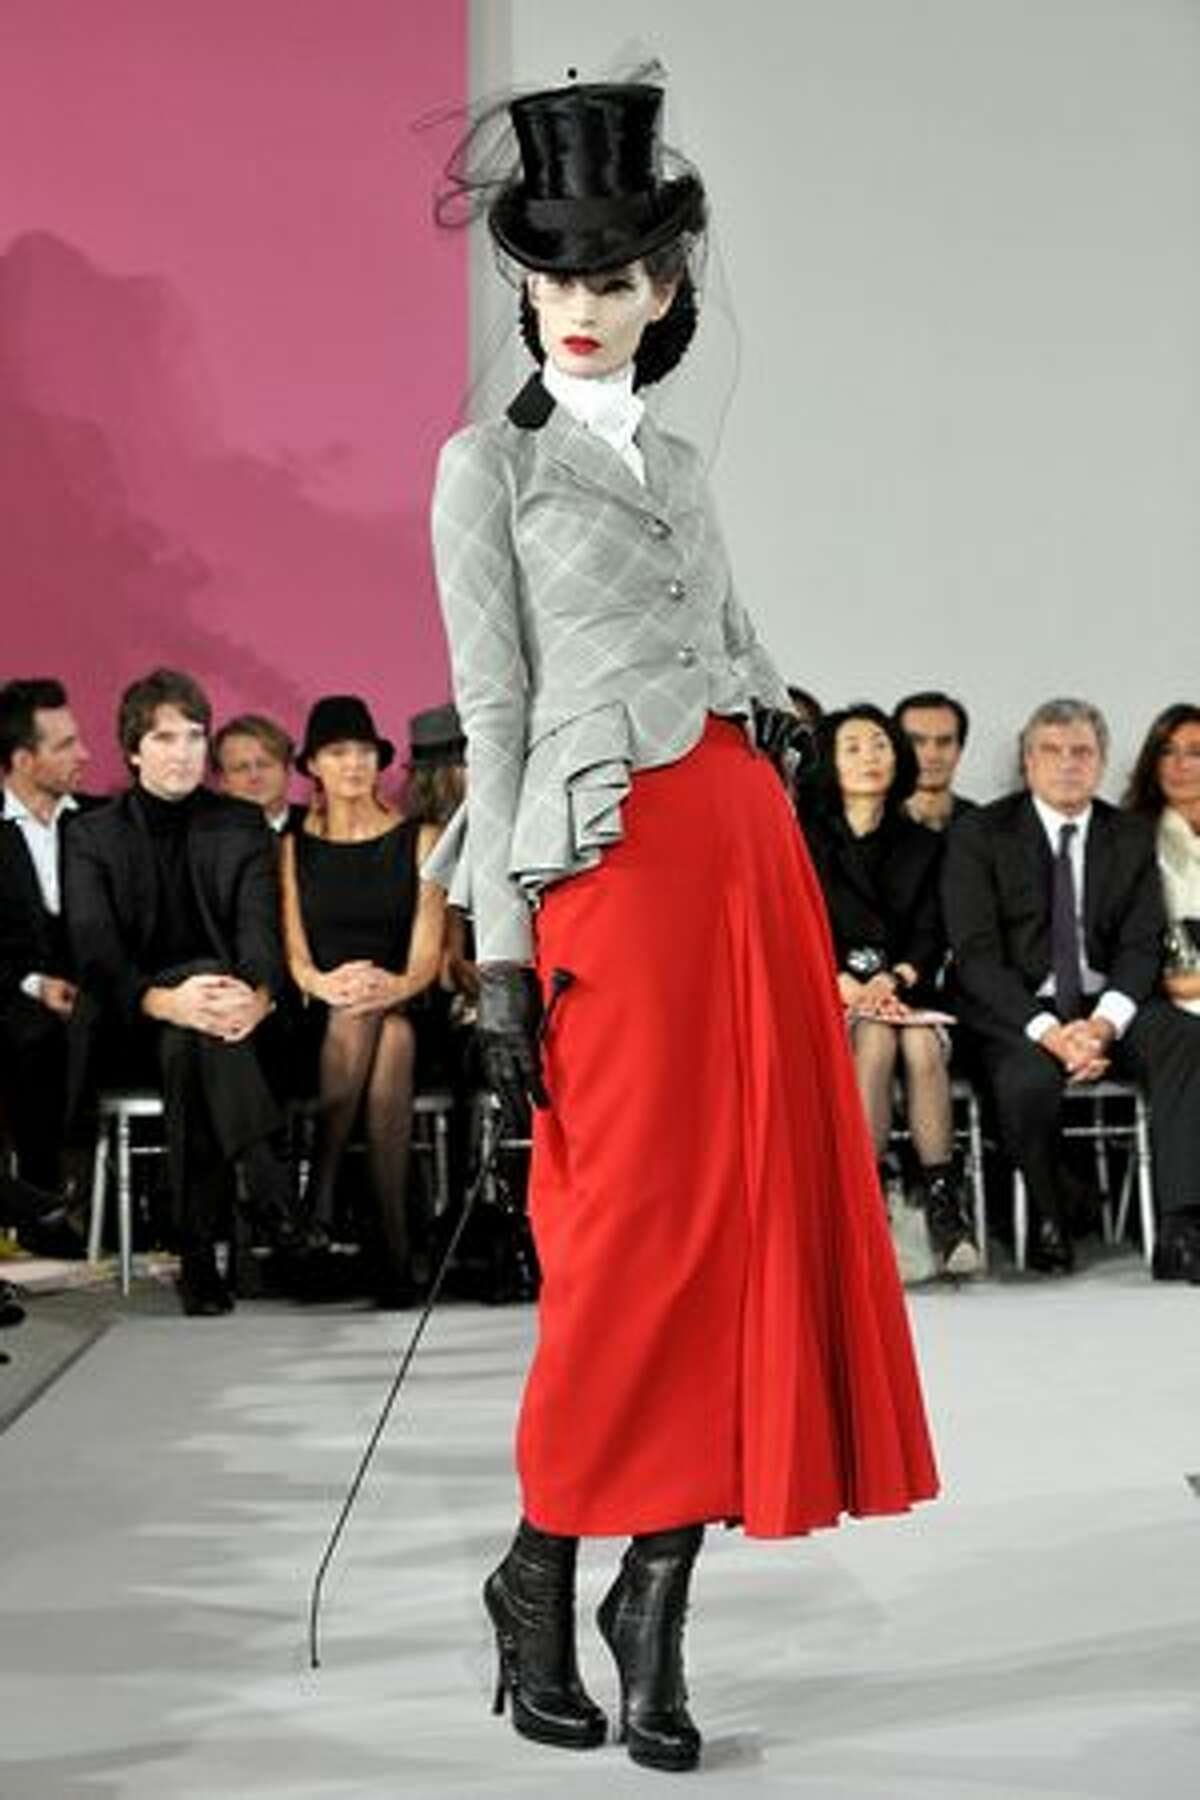 A model walks the runway in Christian Dior.